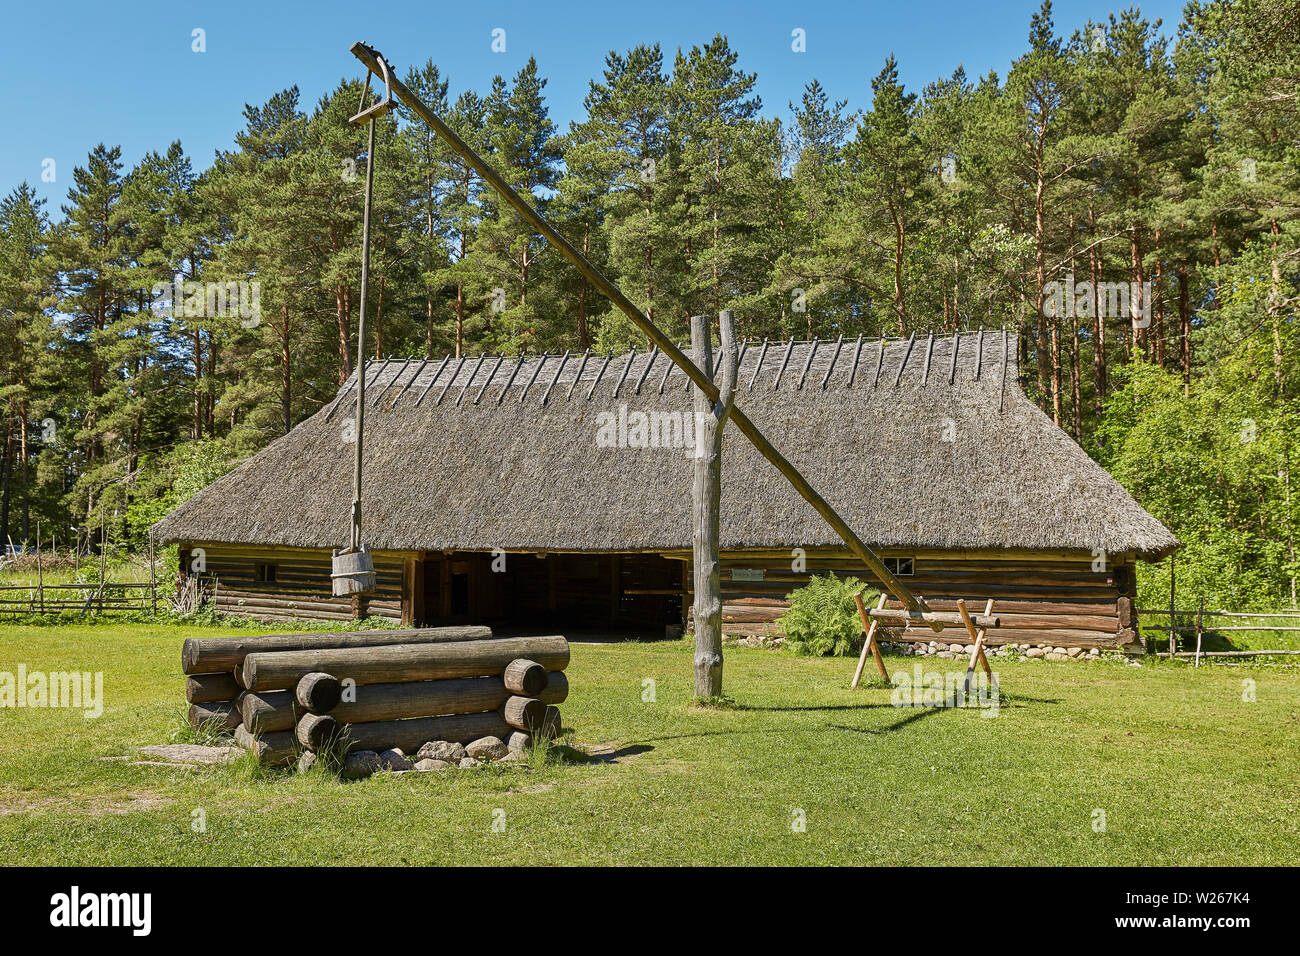 TALLINN, ESTONIA - JULY 07, 2017: Traditional open air museum, Vabaohumuuseumi kivikulv, Rocca al Mare close to city of Tallinn in Estonia. - Stock Image